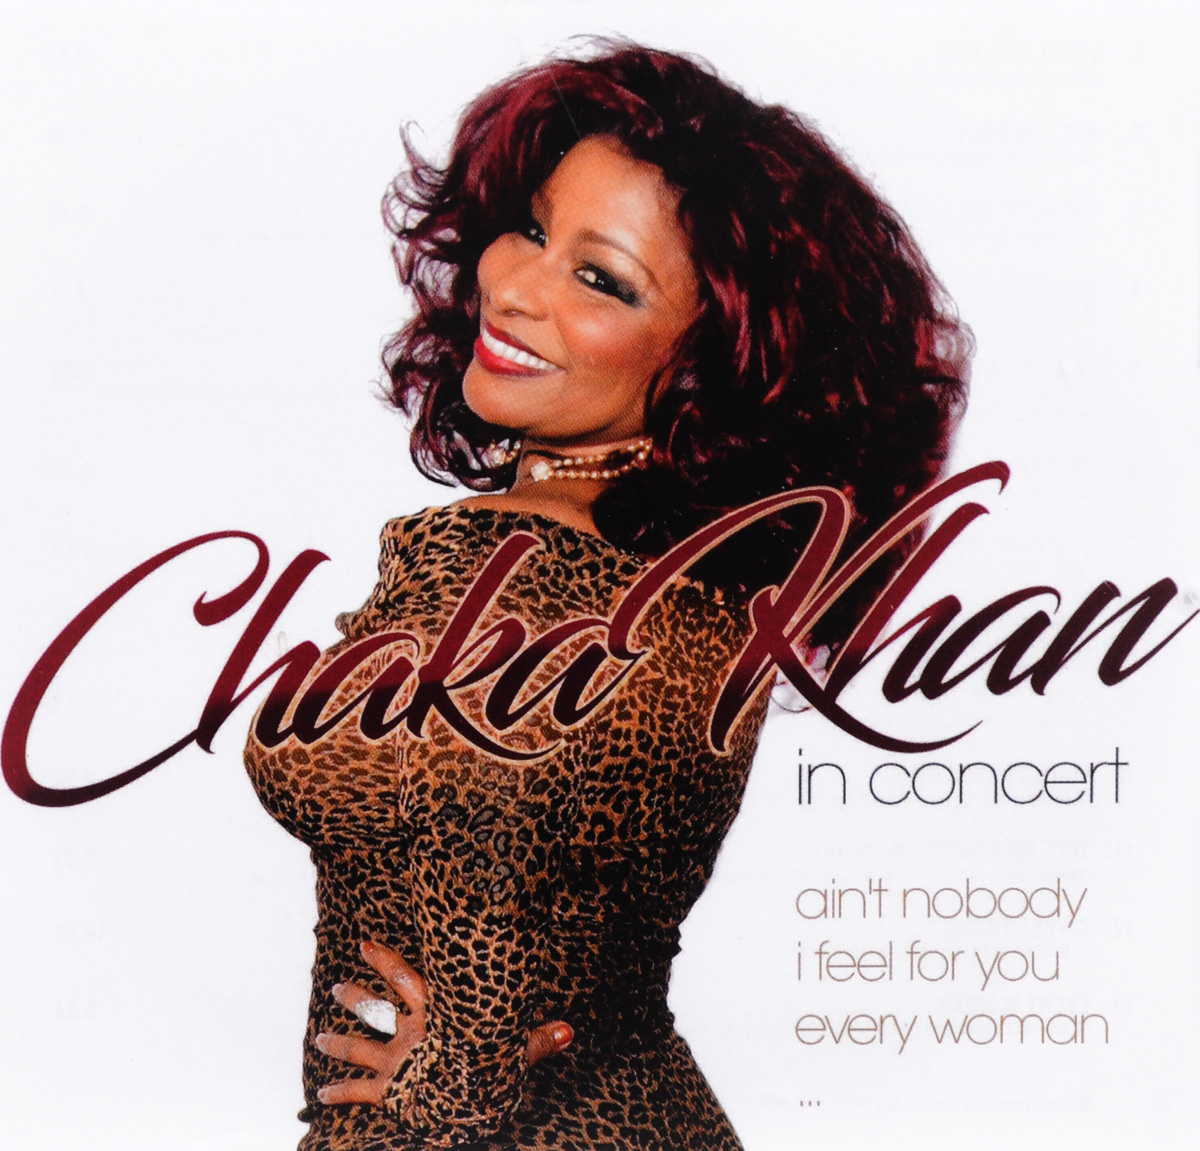 Чака Хан Chaka Khan. Chaka Khan In Concert чака хан chaka khan original album series 5 cd